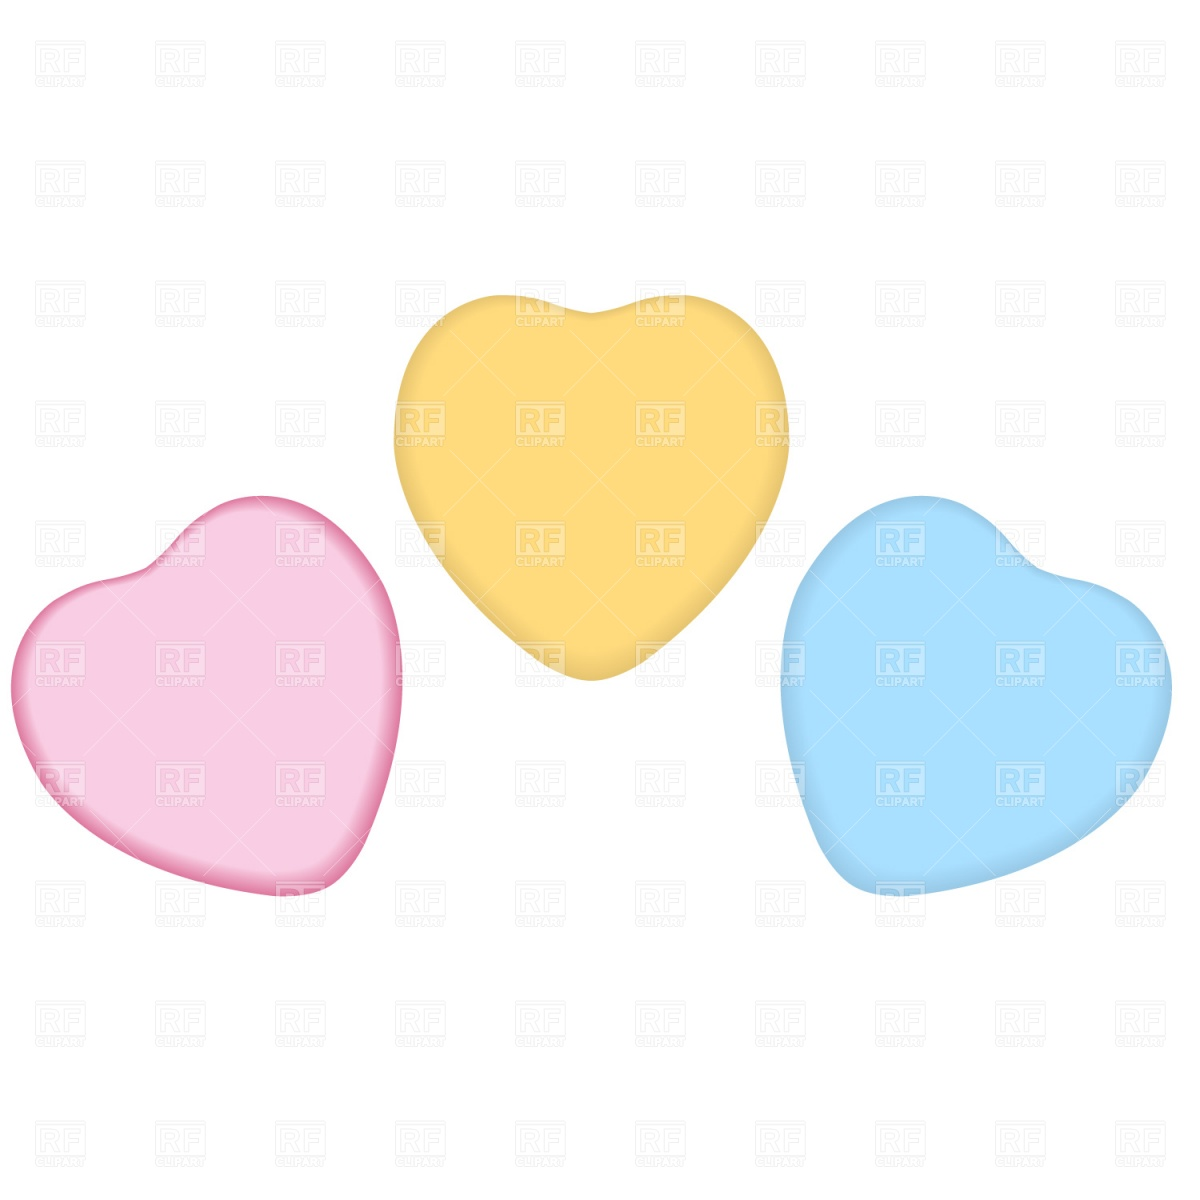 Candy Heart Clip Art